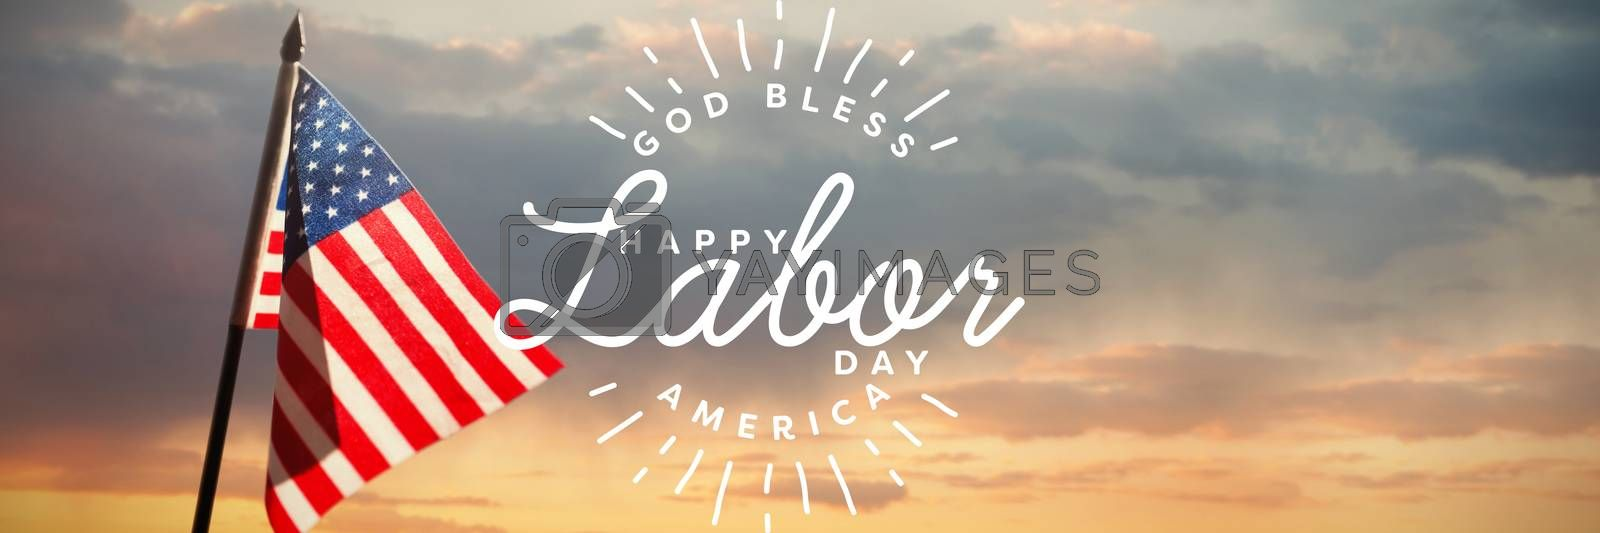 Composite image of composite image of happy labor day and god bless america text by Wavebreakmedia